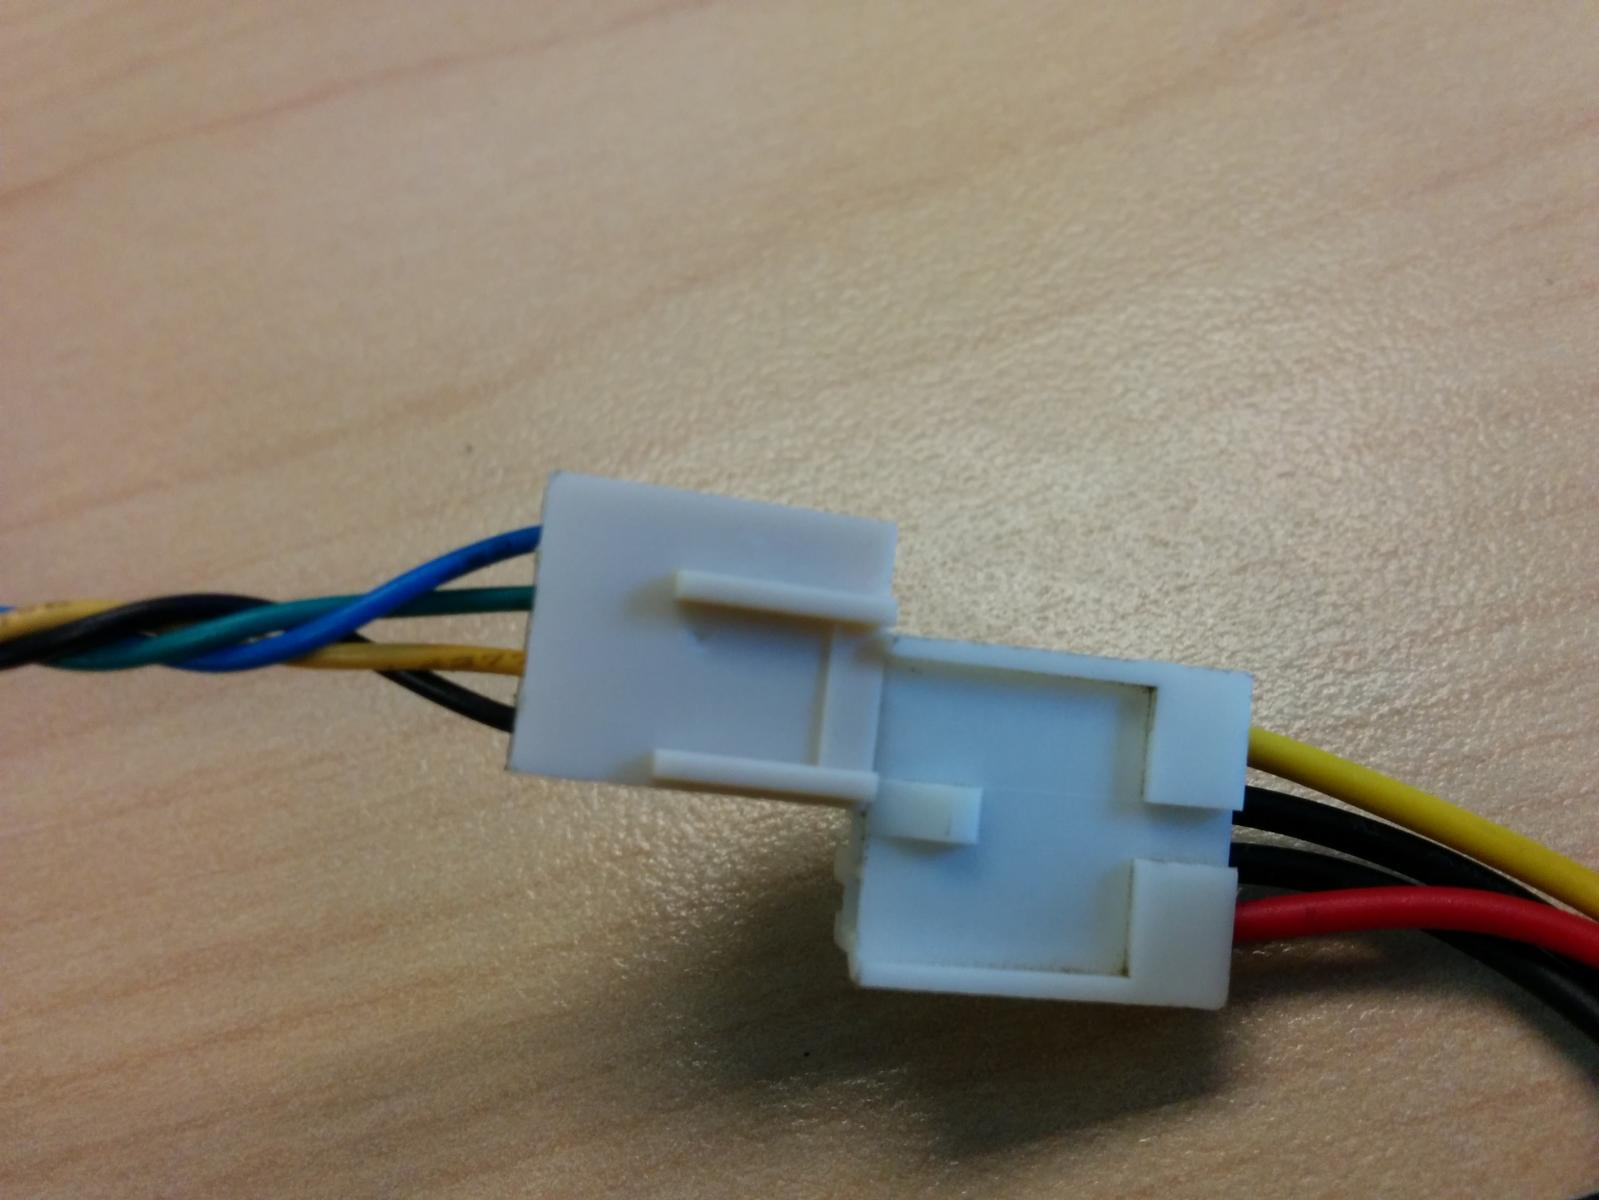 Diy Pwm Controller For Fan Or Pump Cases Power Supplies And Modding